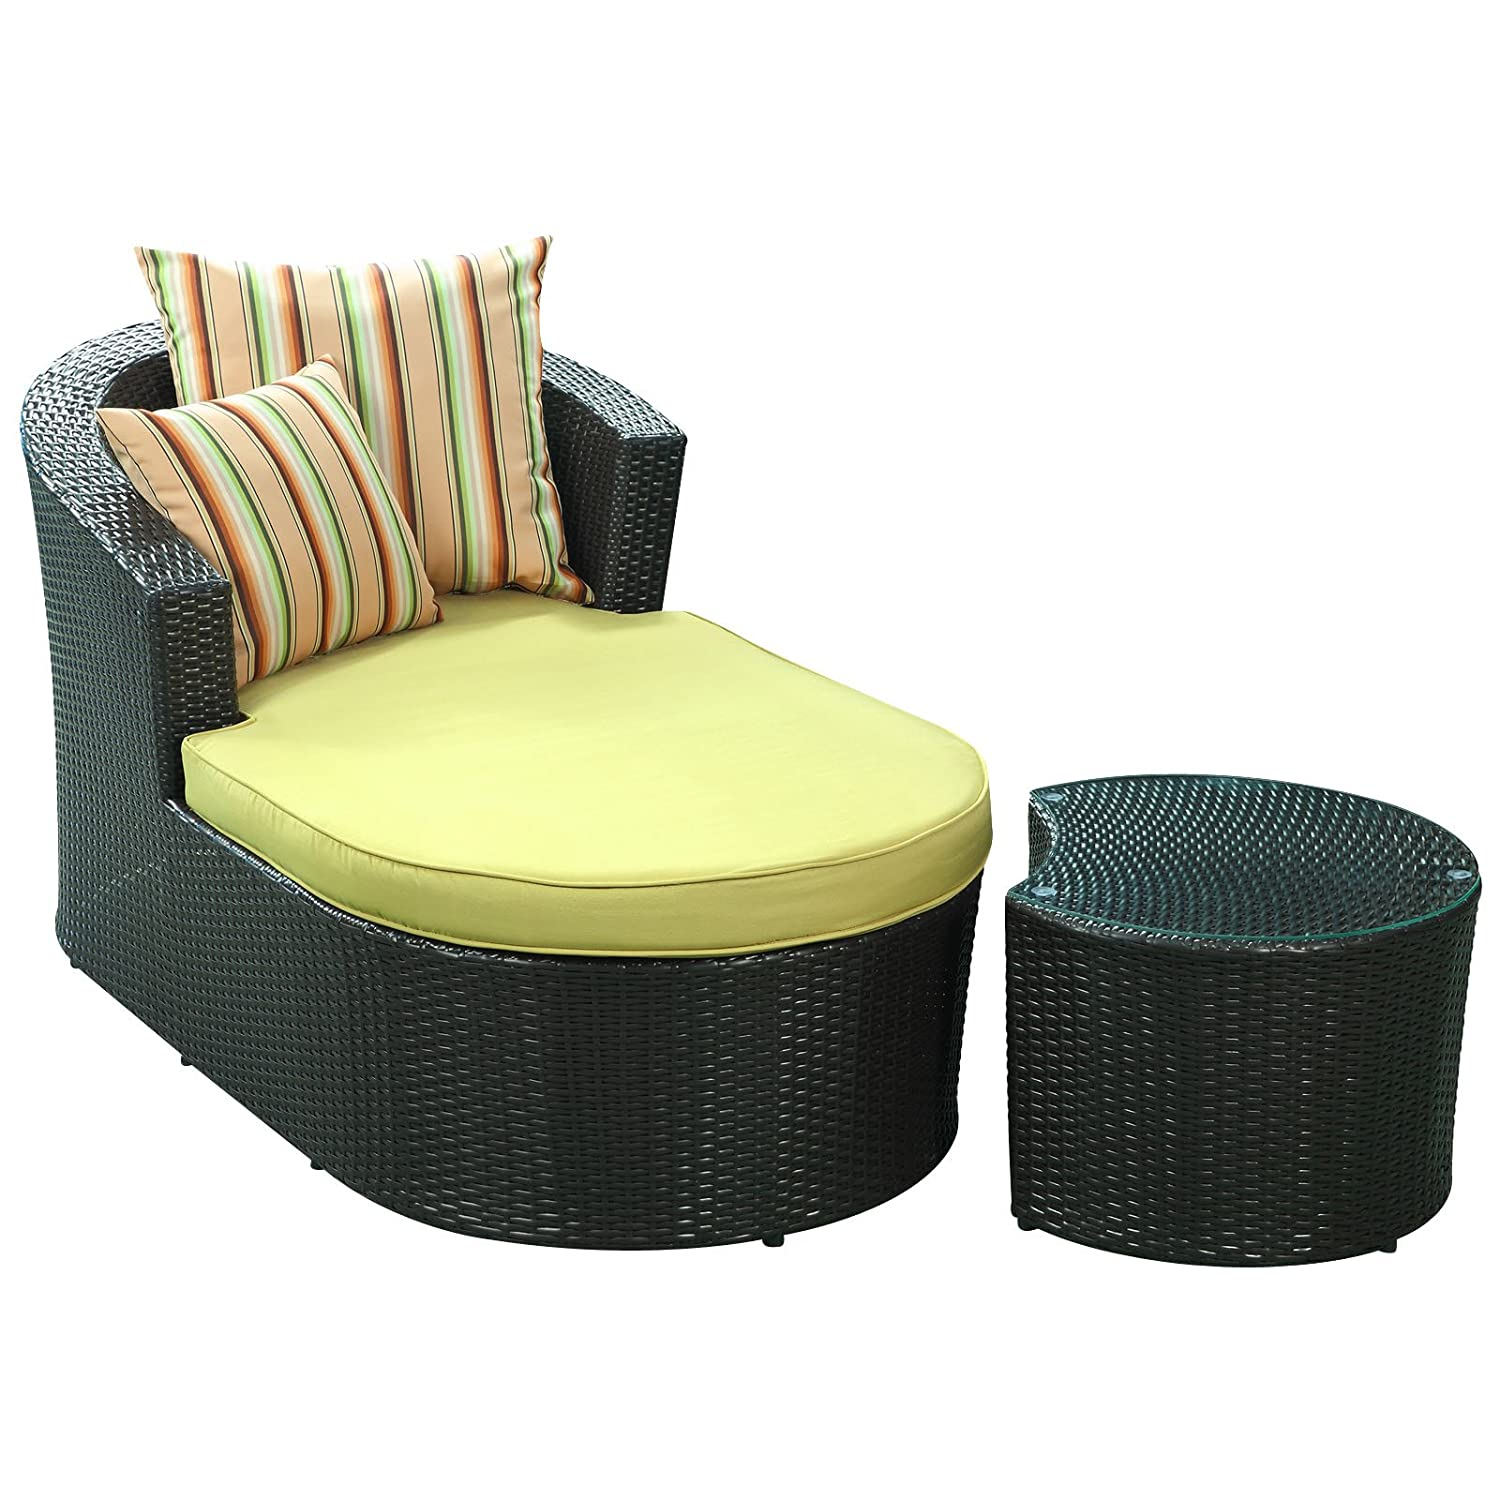 Amazon.com : Modway Camouflage Outdoor Wicker Patio Chaise Lounge 2 Piece  Set : Patio Lounge Chairs : Garden U0026 Outdoor